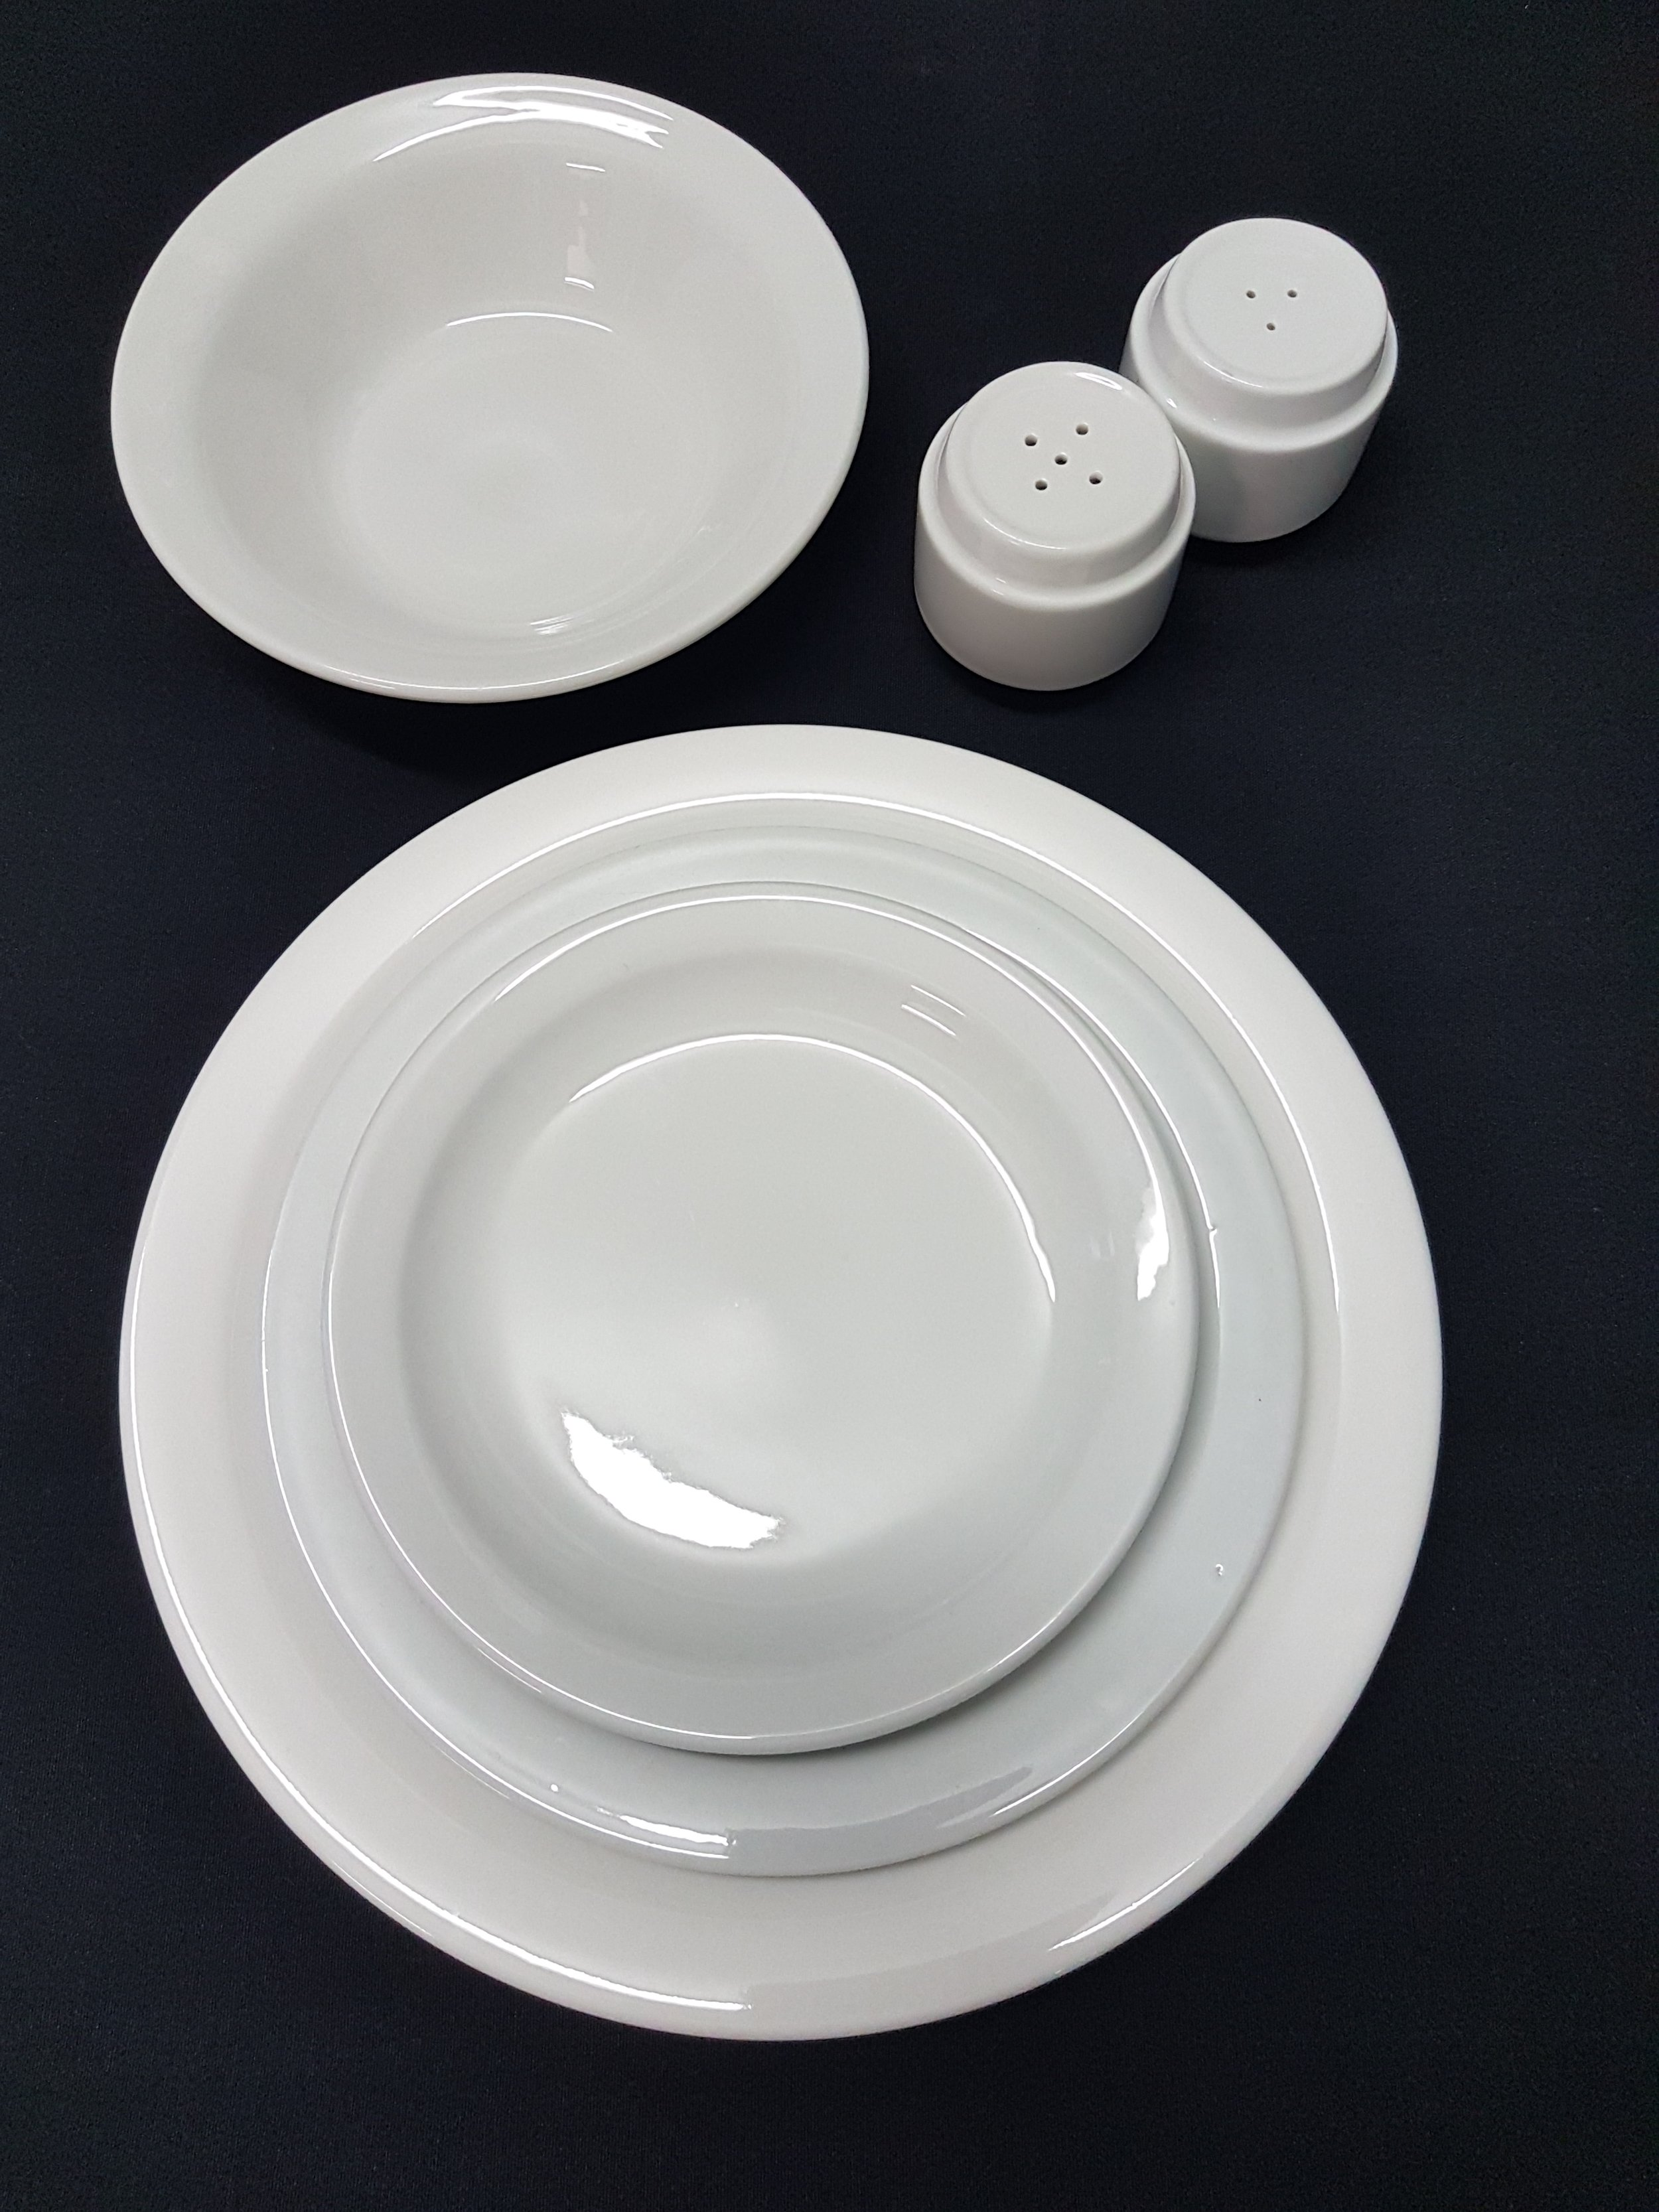 "white china dinner set - All hired separately, no minimumsDinner Plate 10"" .55c eaEntree Plate 8"" .55c eaBread & Butter Plate 6"" .44c eaSoup Bowl 6"" .44c eaSalt & Pepper Shakers Set $1.65ea"